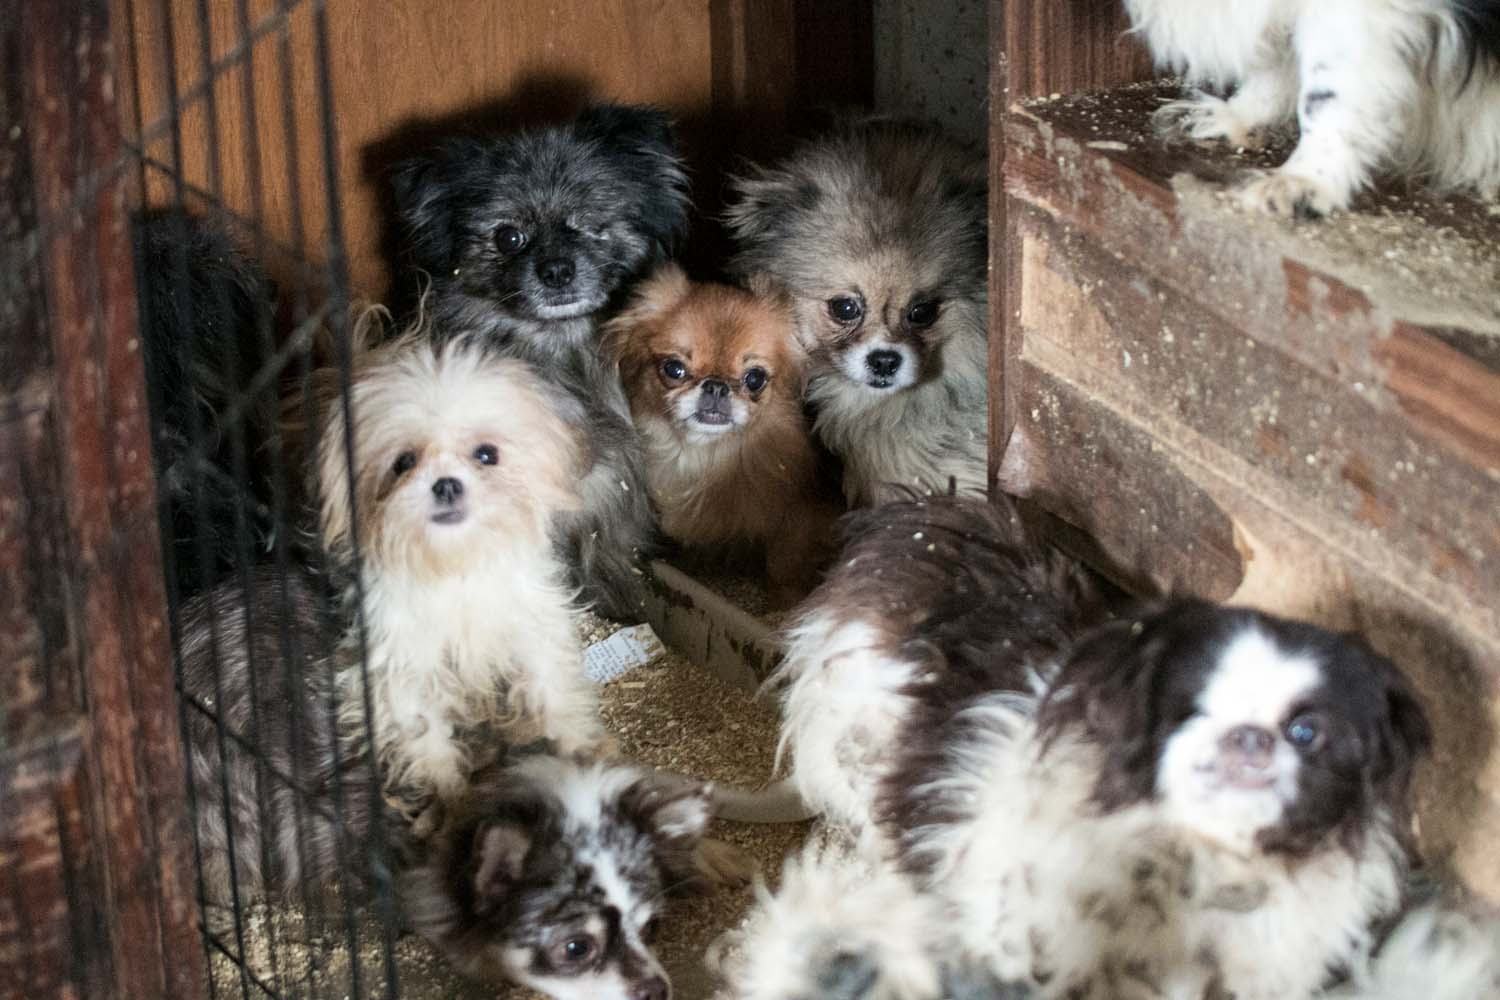 Dogs living in cramped space